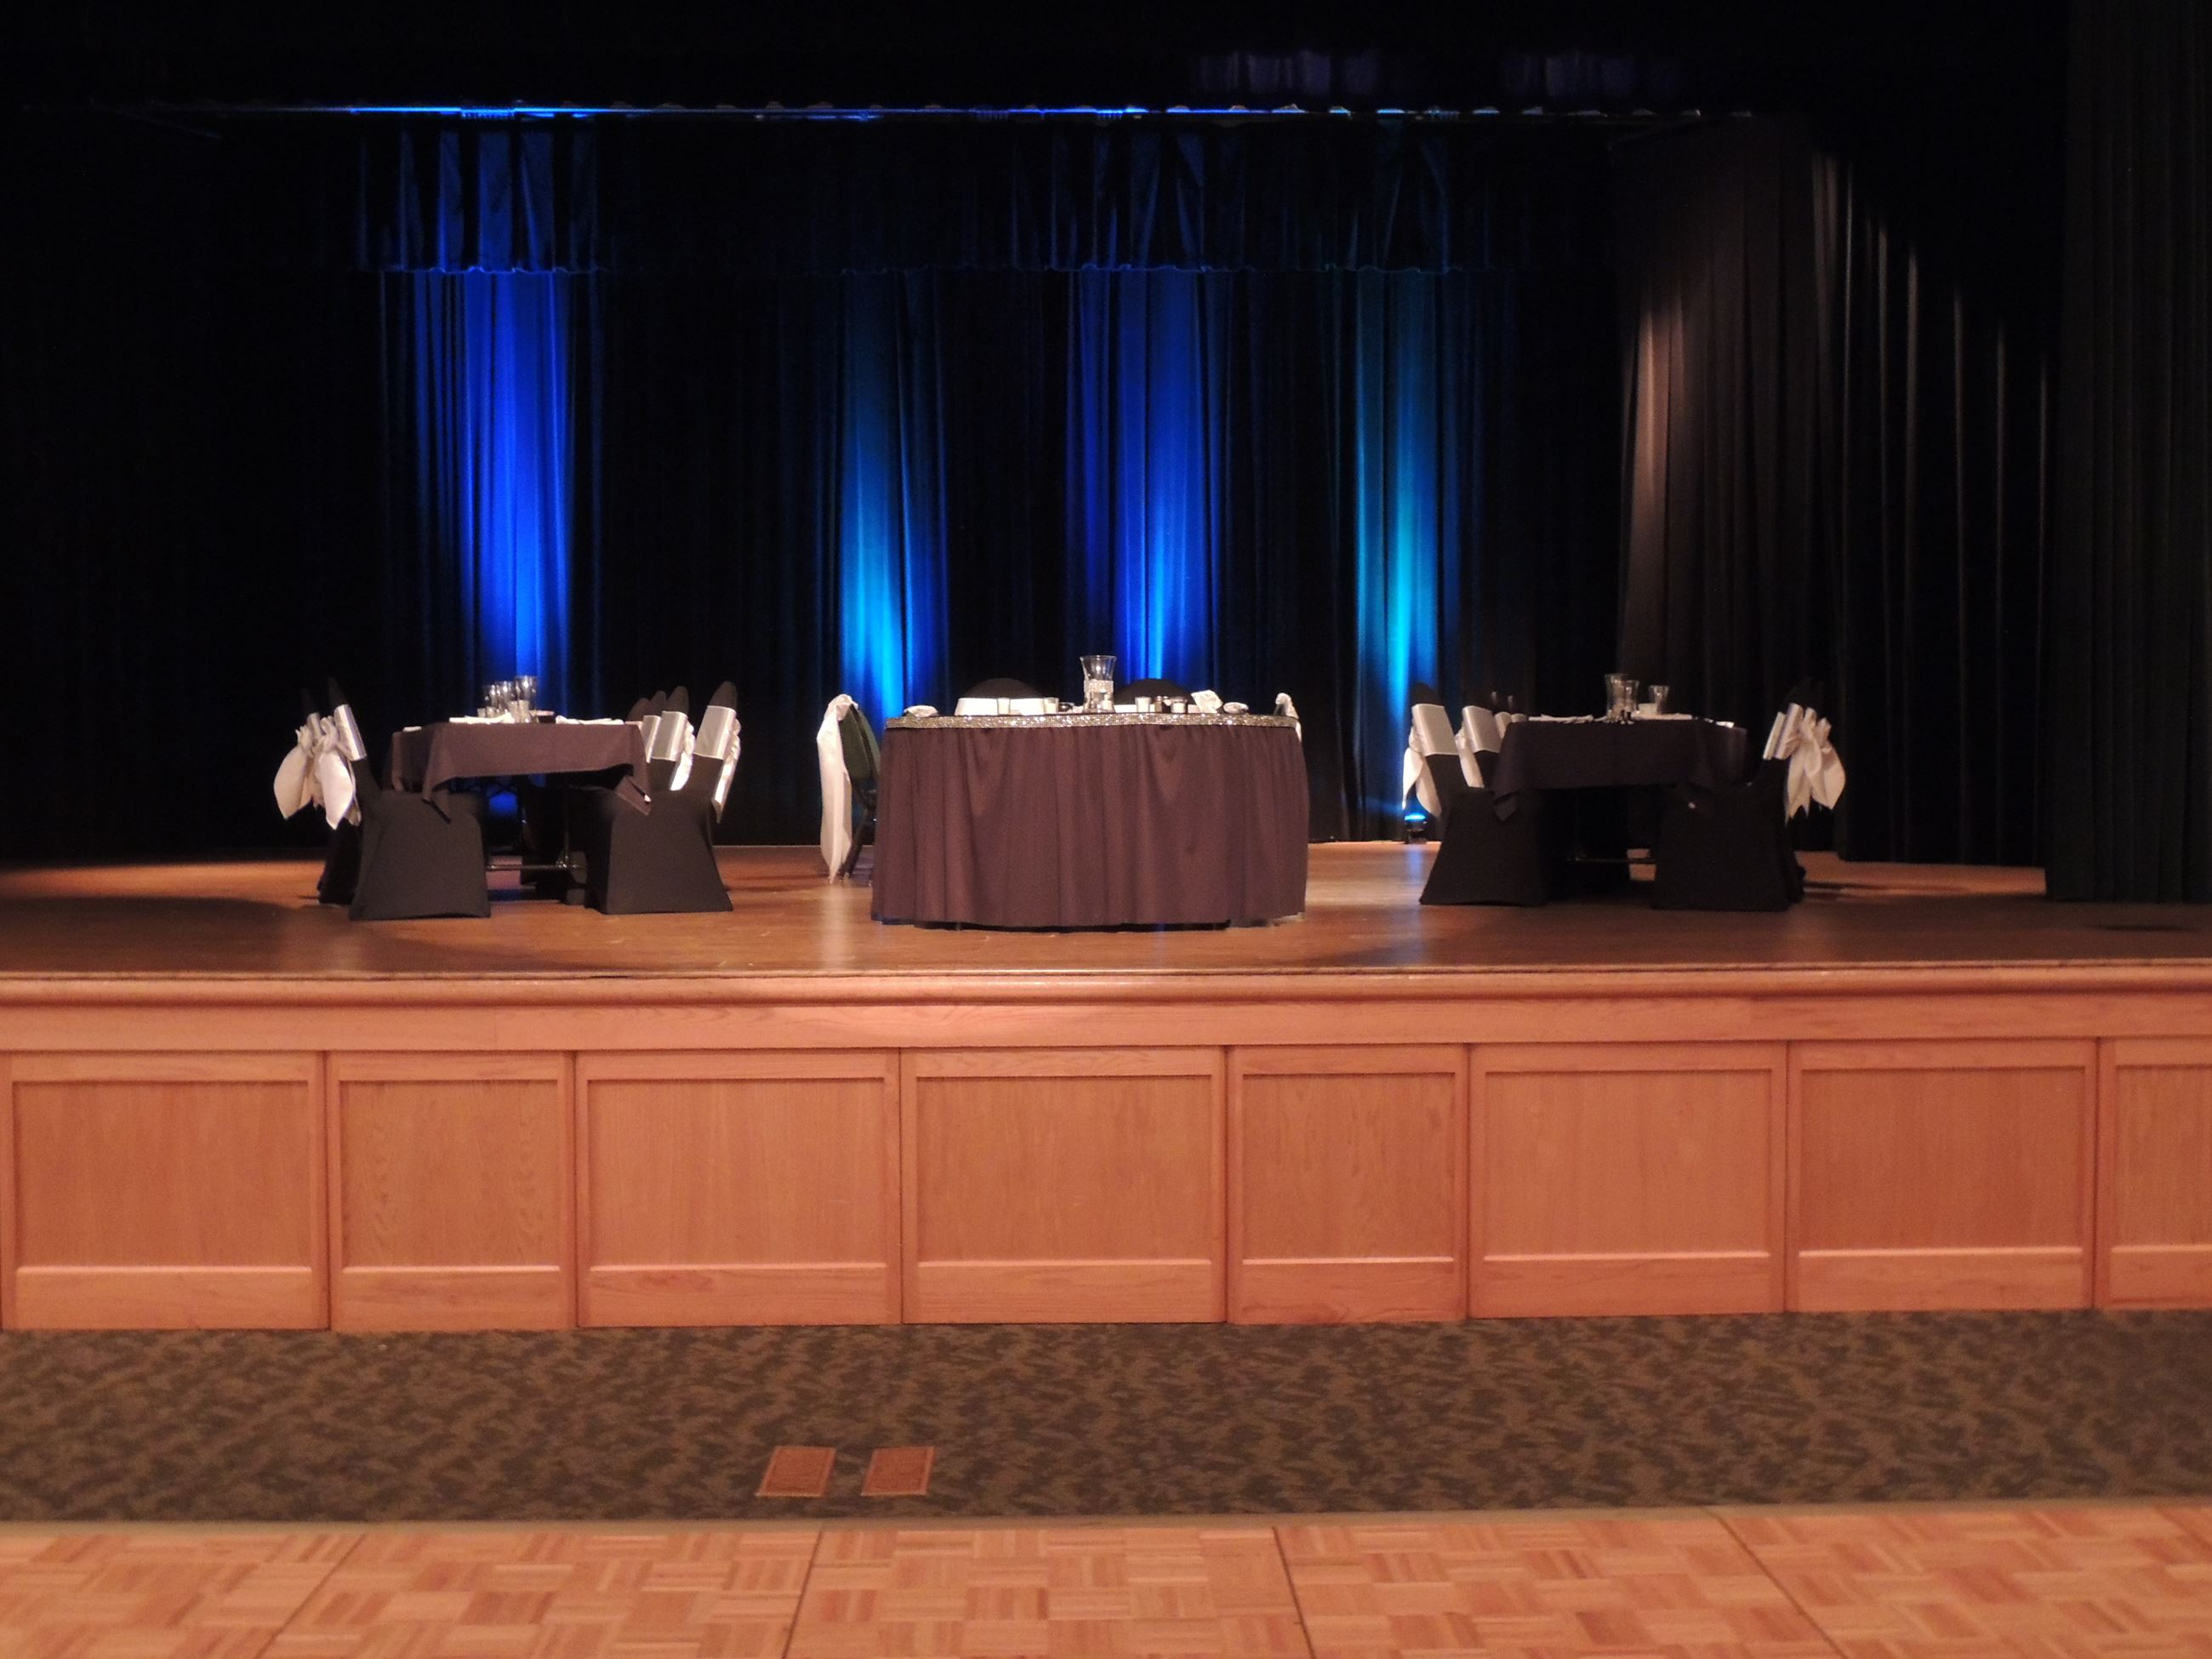 Black and white wedding reception head tables on stage